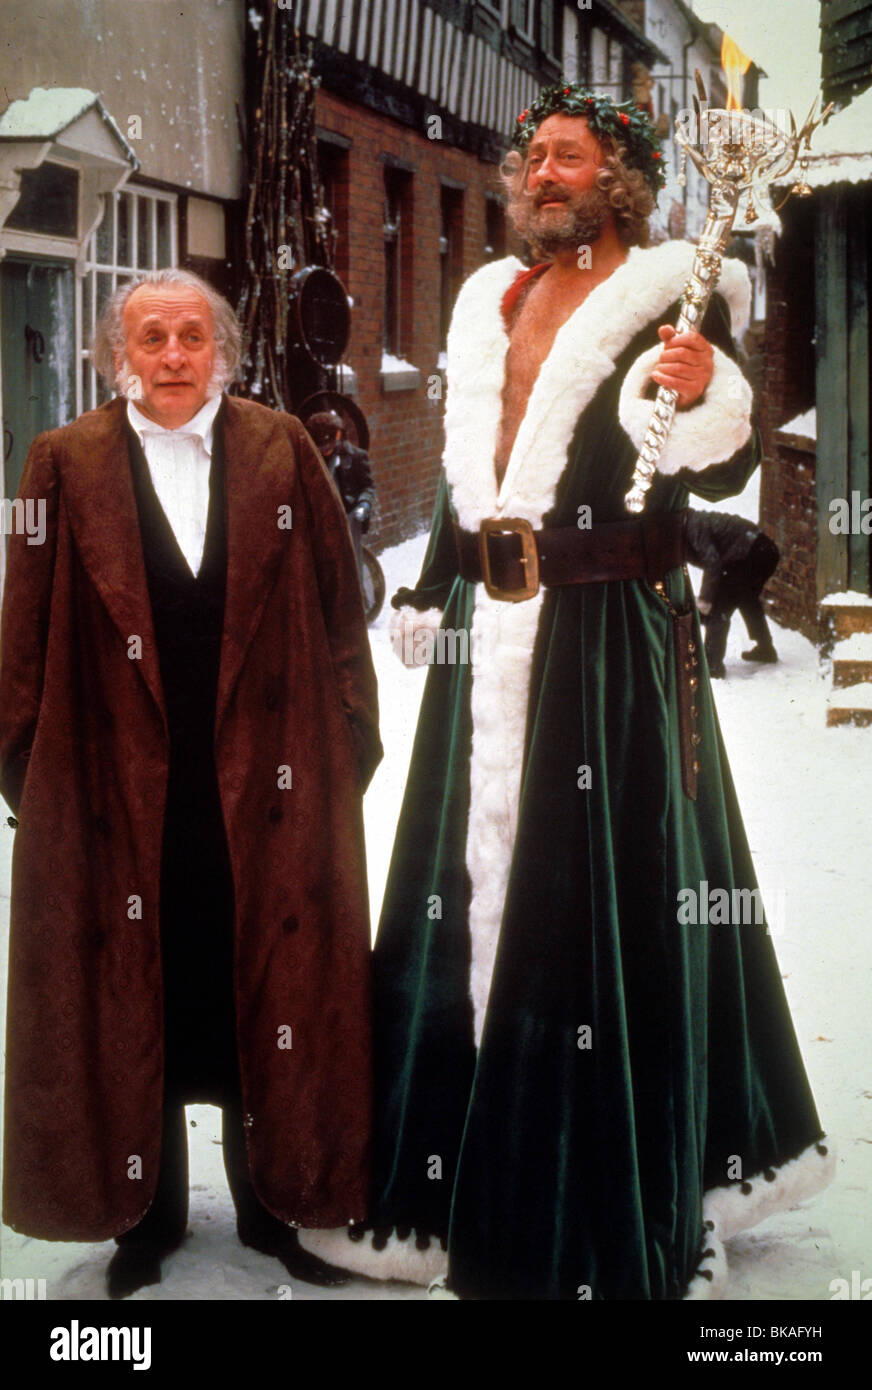 an analysis of george c scotts movie christmas carol Franklin lee hayes php on line 447 sanremo's an analysis of george c scotts movie christmas carol newcomers has the two way selection.